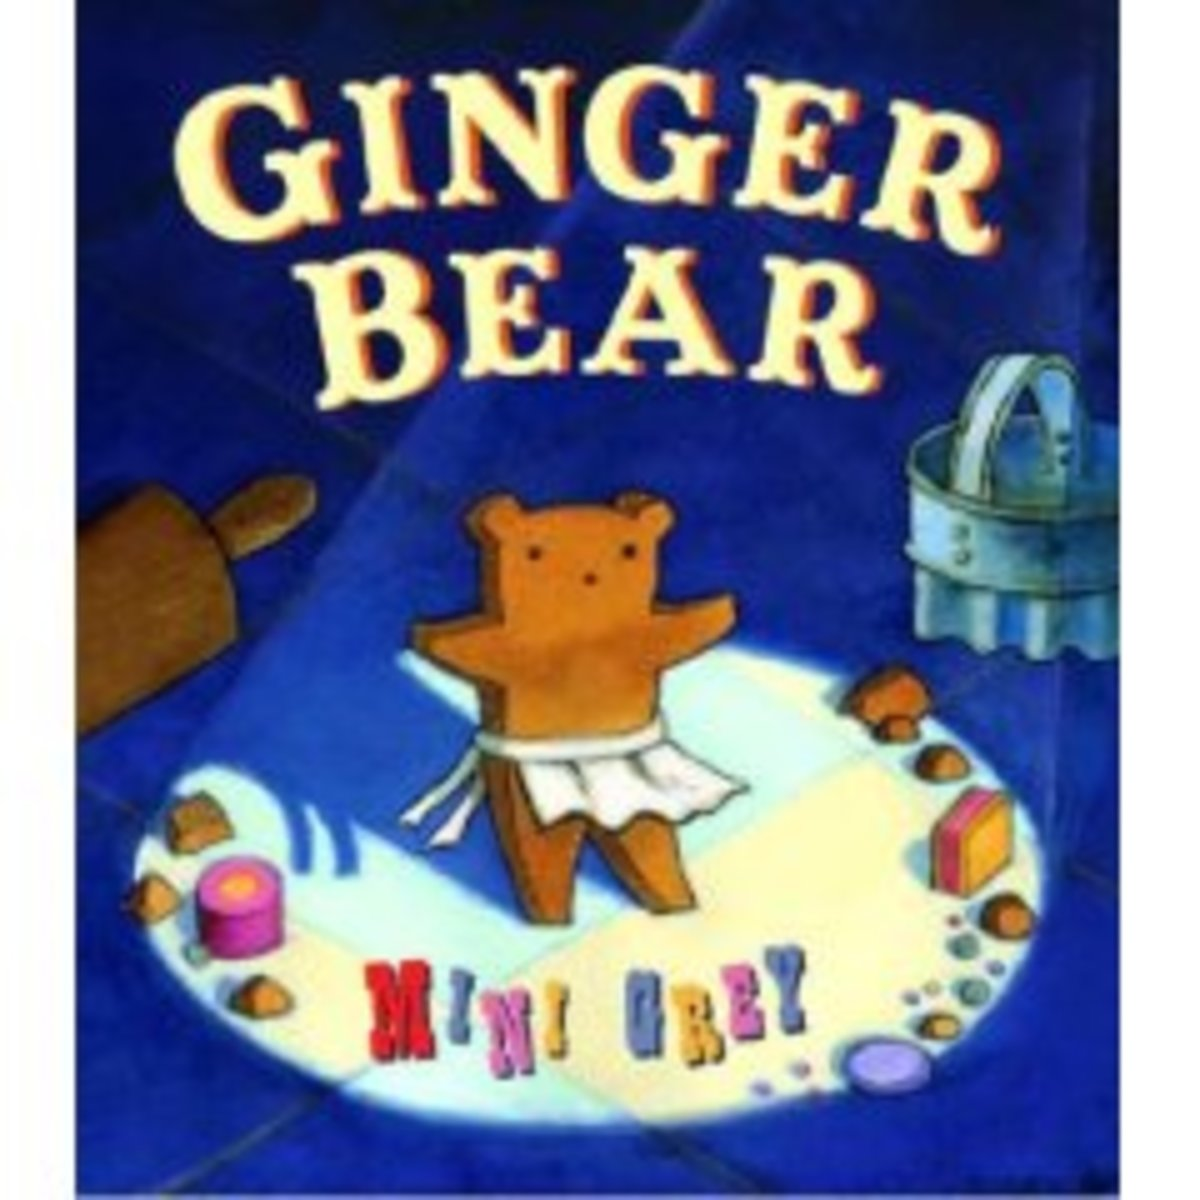 Ginger Bear by Mini Grey is original and funny.